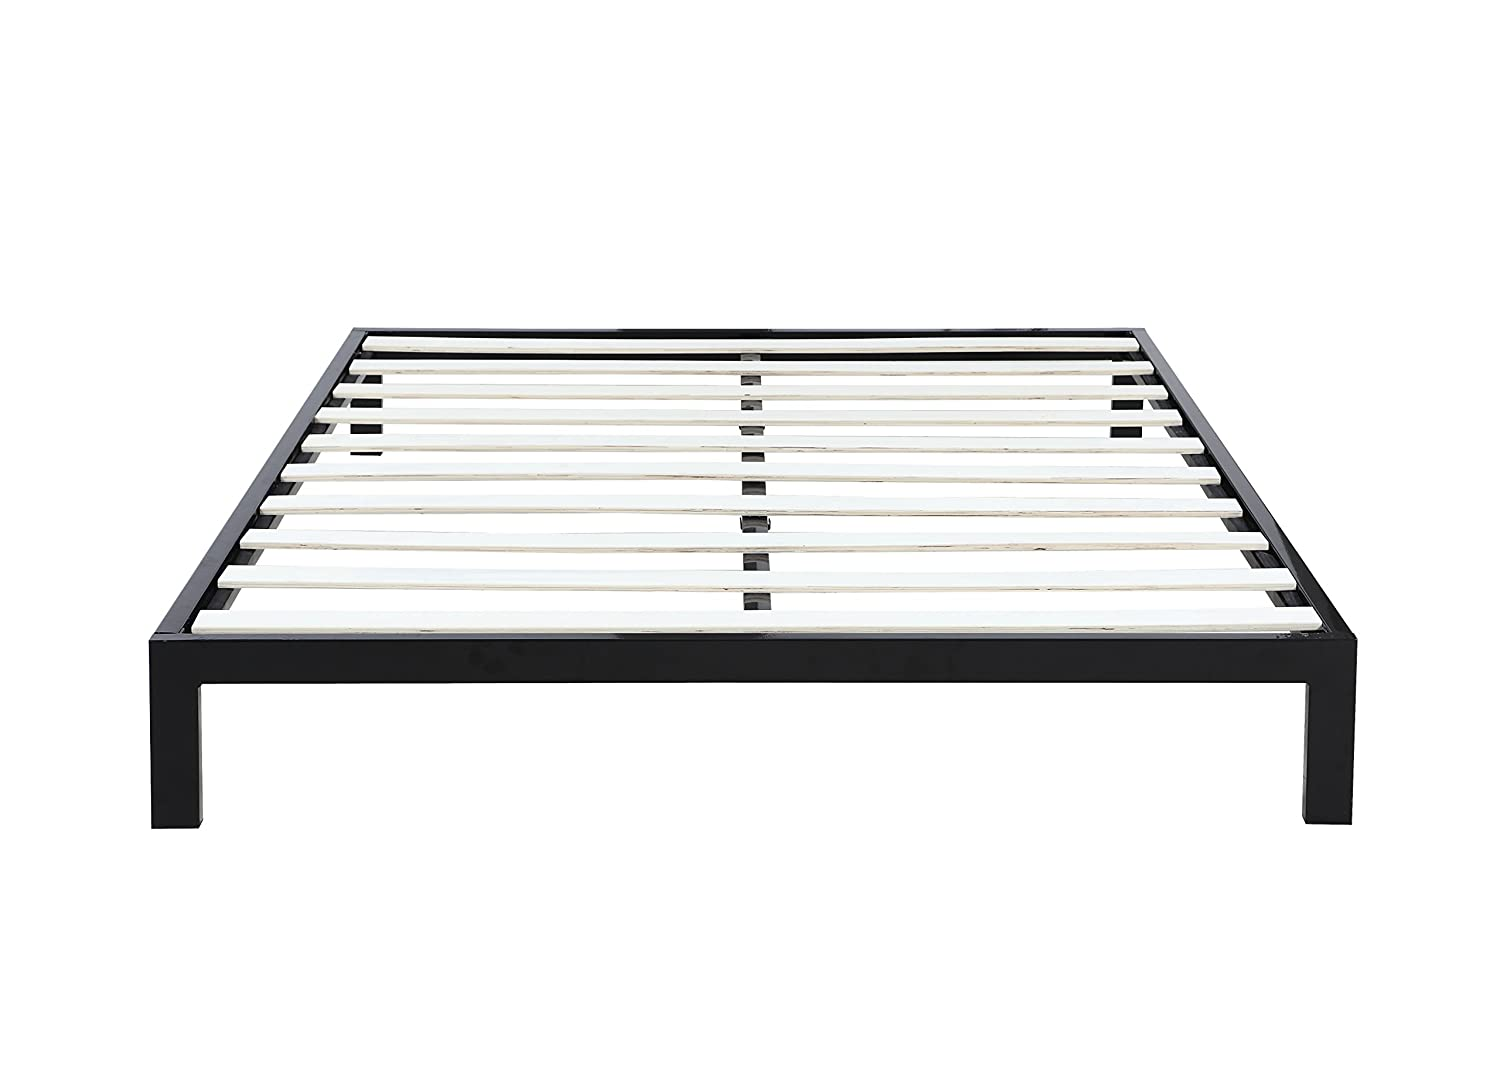 amazoncom modern  low metal platform bed frame  mattress  - amazoncom modern  low metal platform bed frame  mattress foundation ( queen black) kitchen  dining